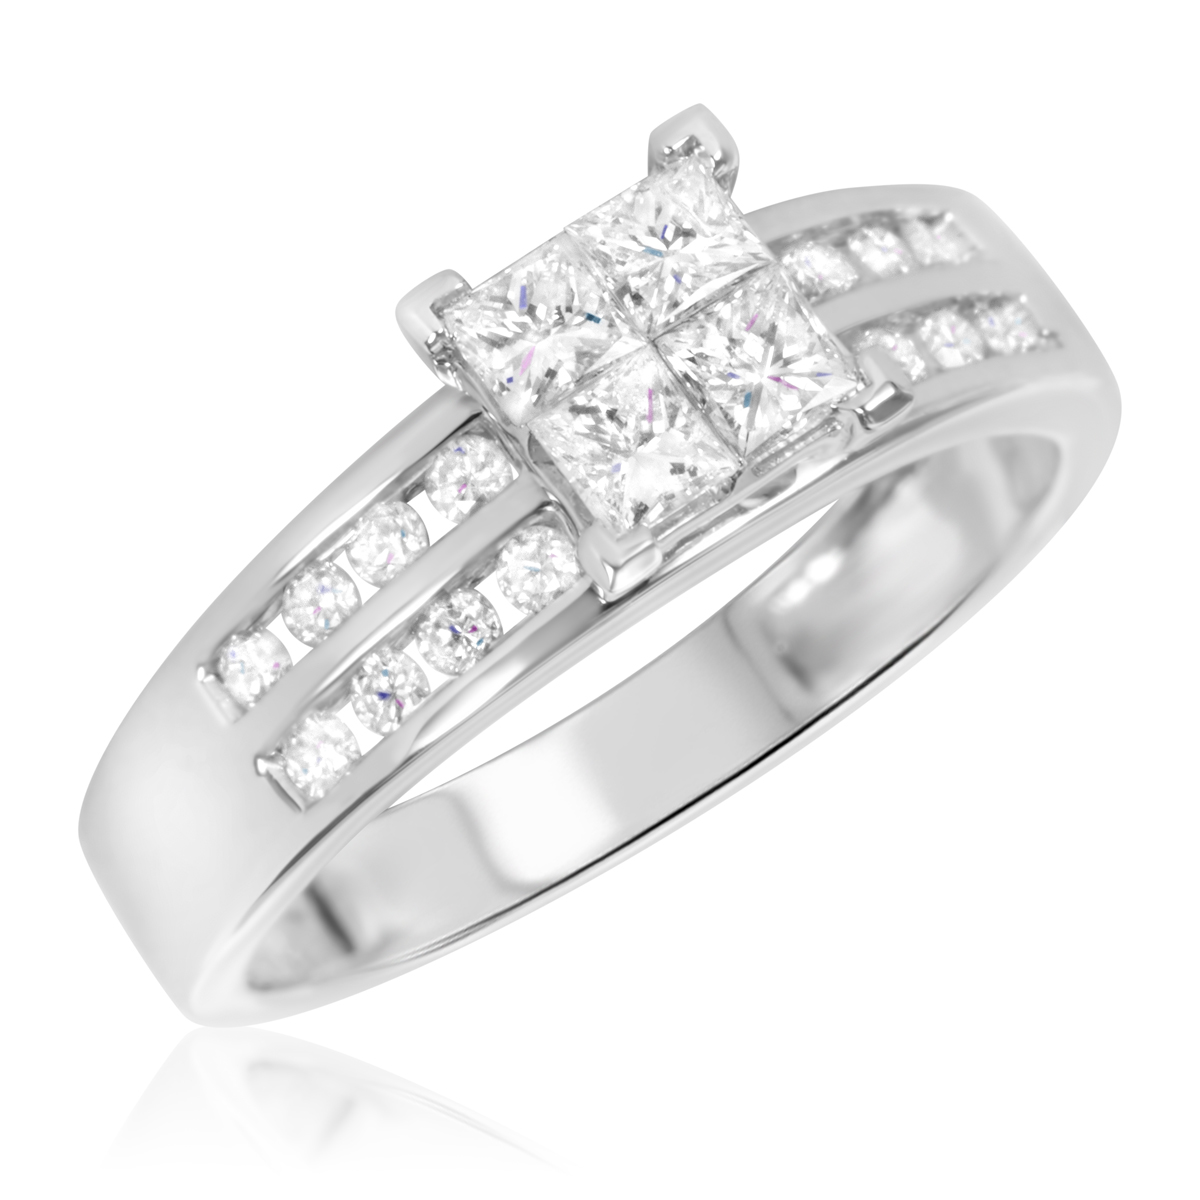 3/4 Carat T.W. Diamond Ladies' Engagement Ring 14K White Gold